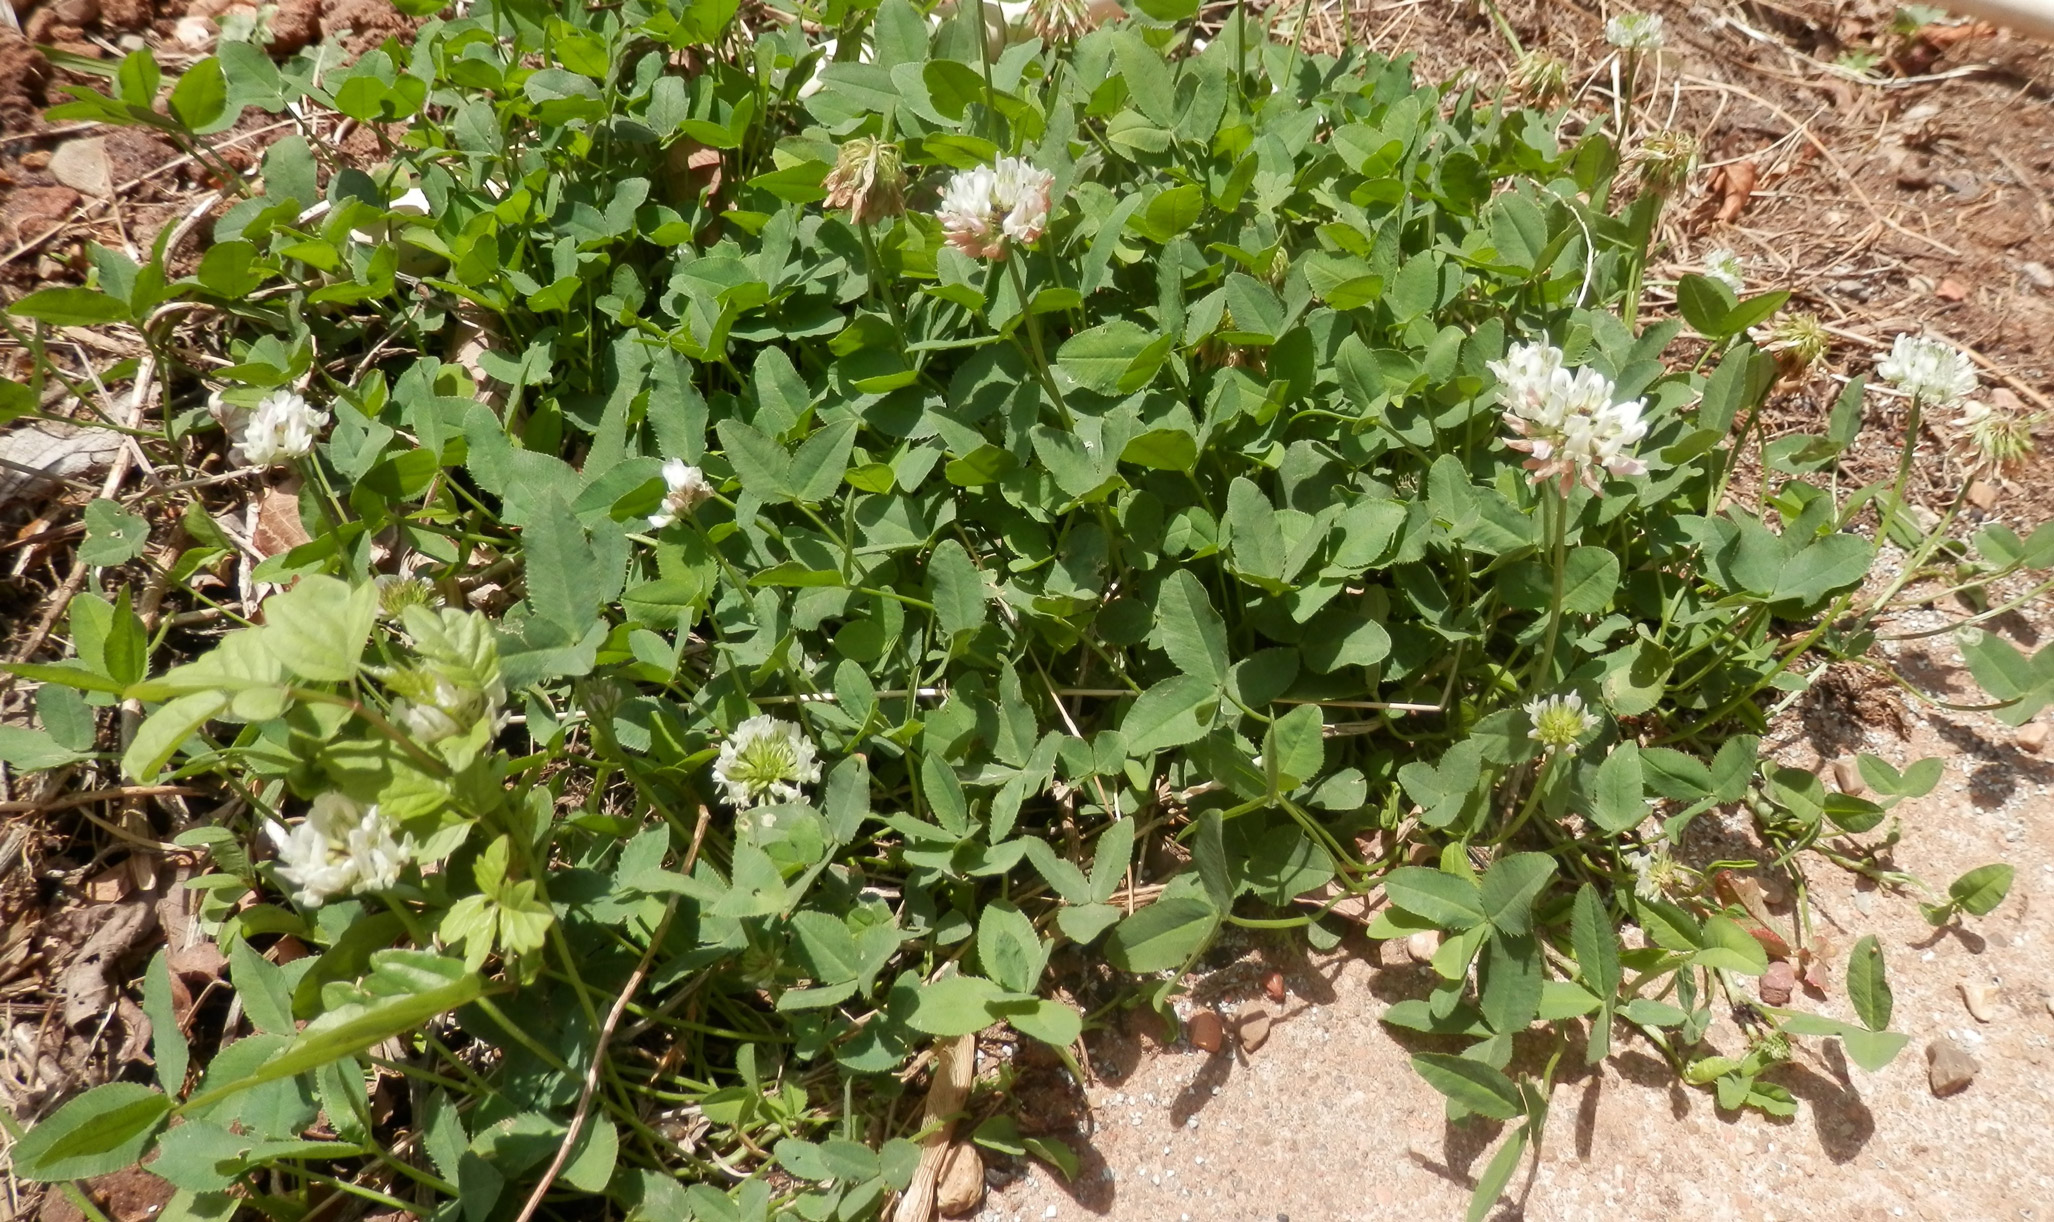 clover growing by the sidewalk